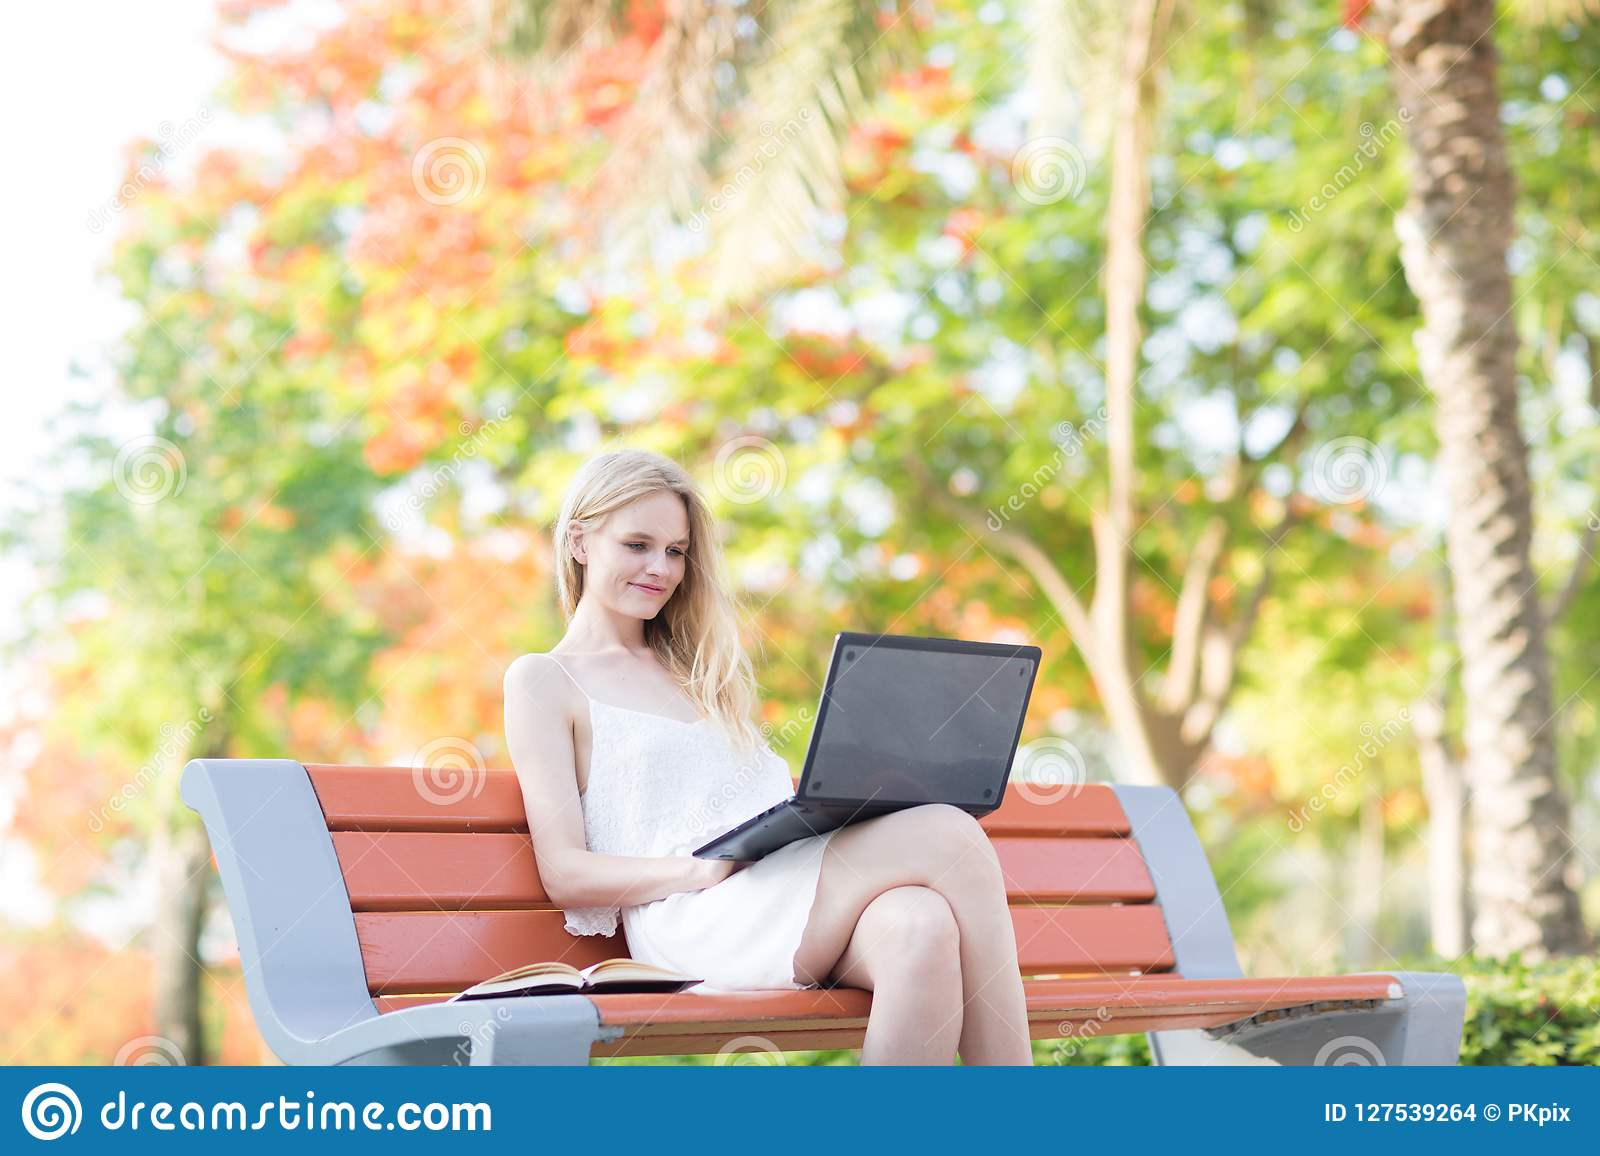 Beautiful woman sitting on a park bench using a laptop. Colorful trees in the background